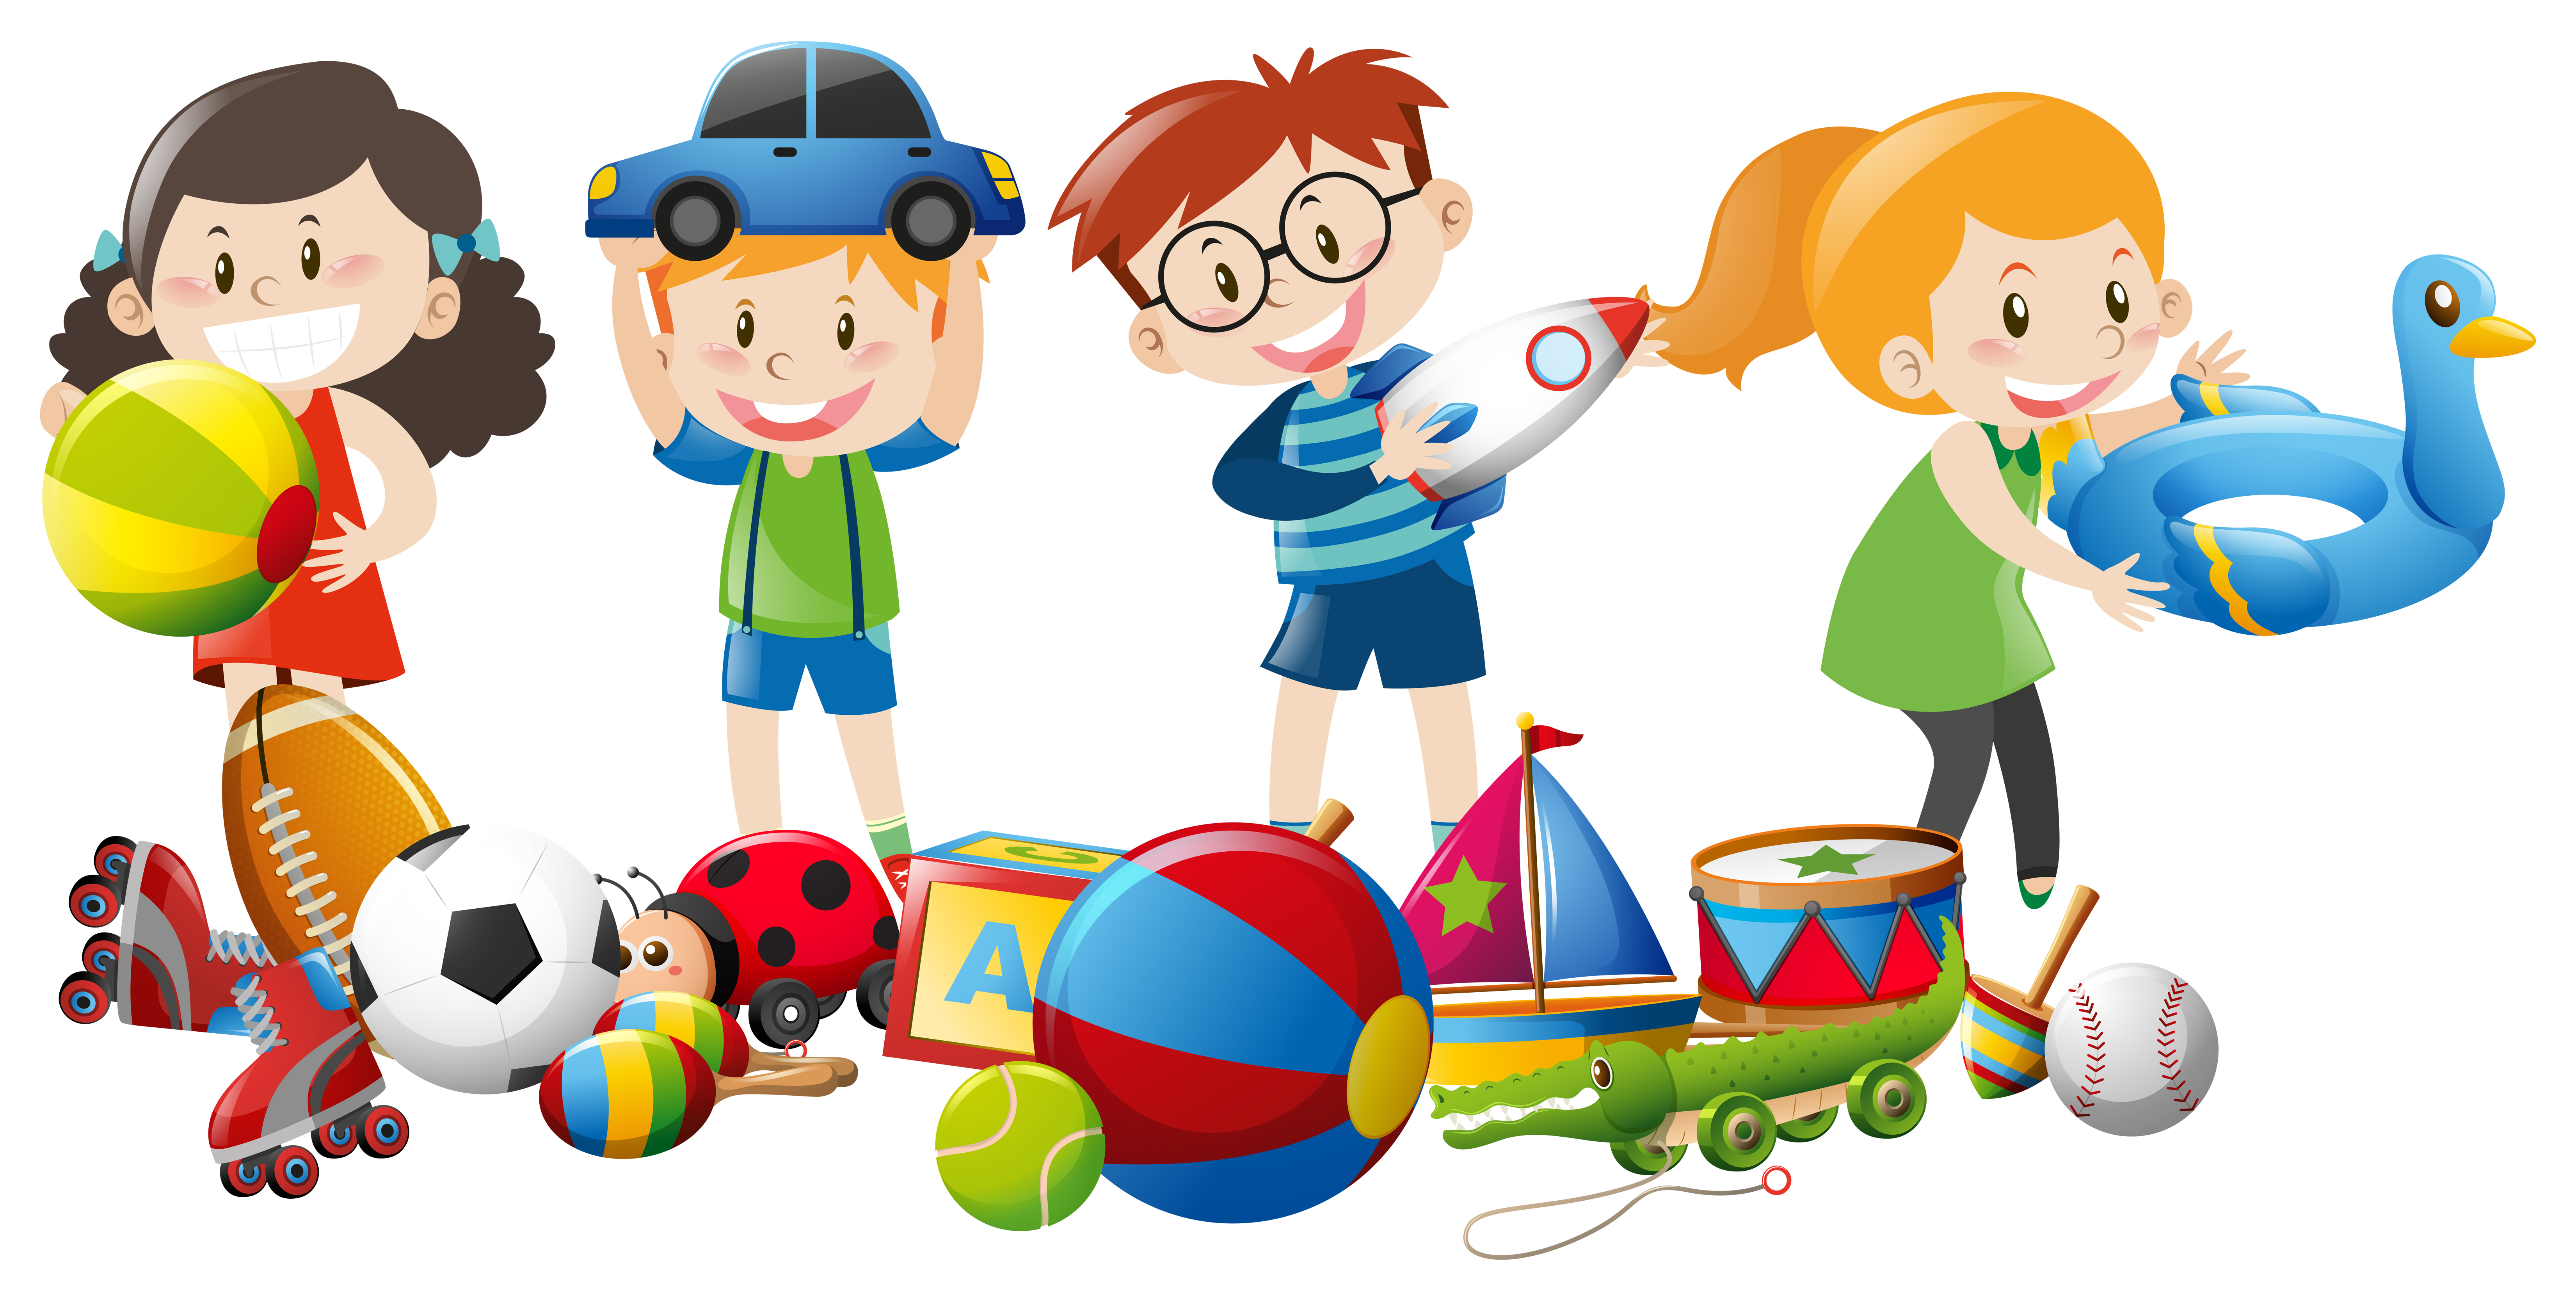 Many kids playing with toys - Download Free Vectors ...